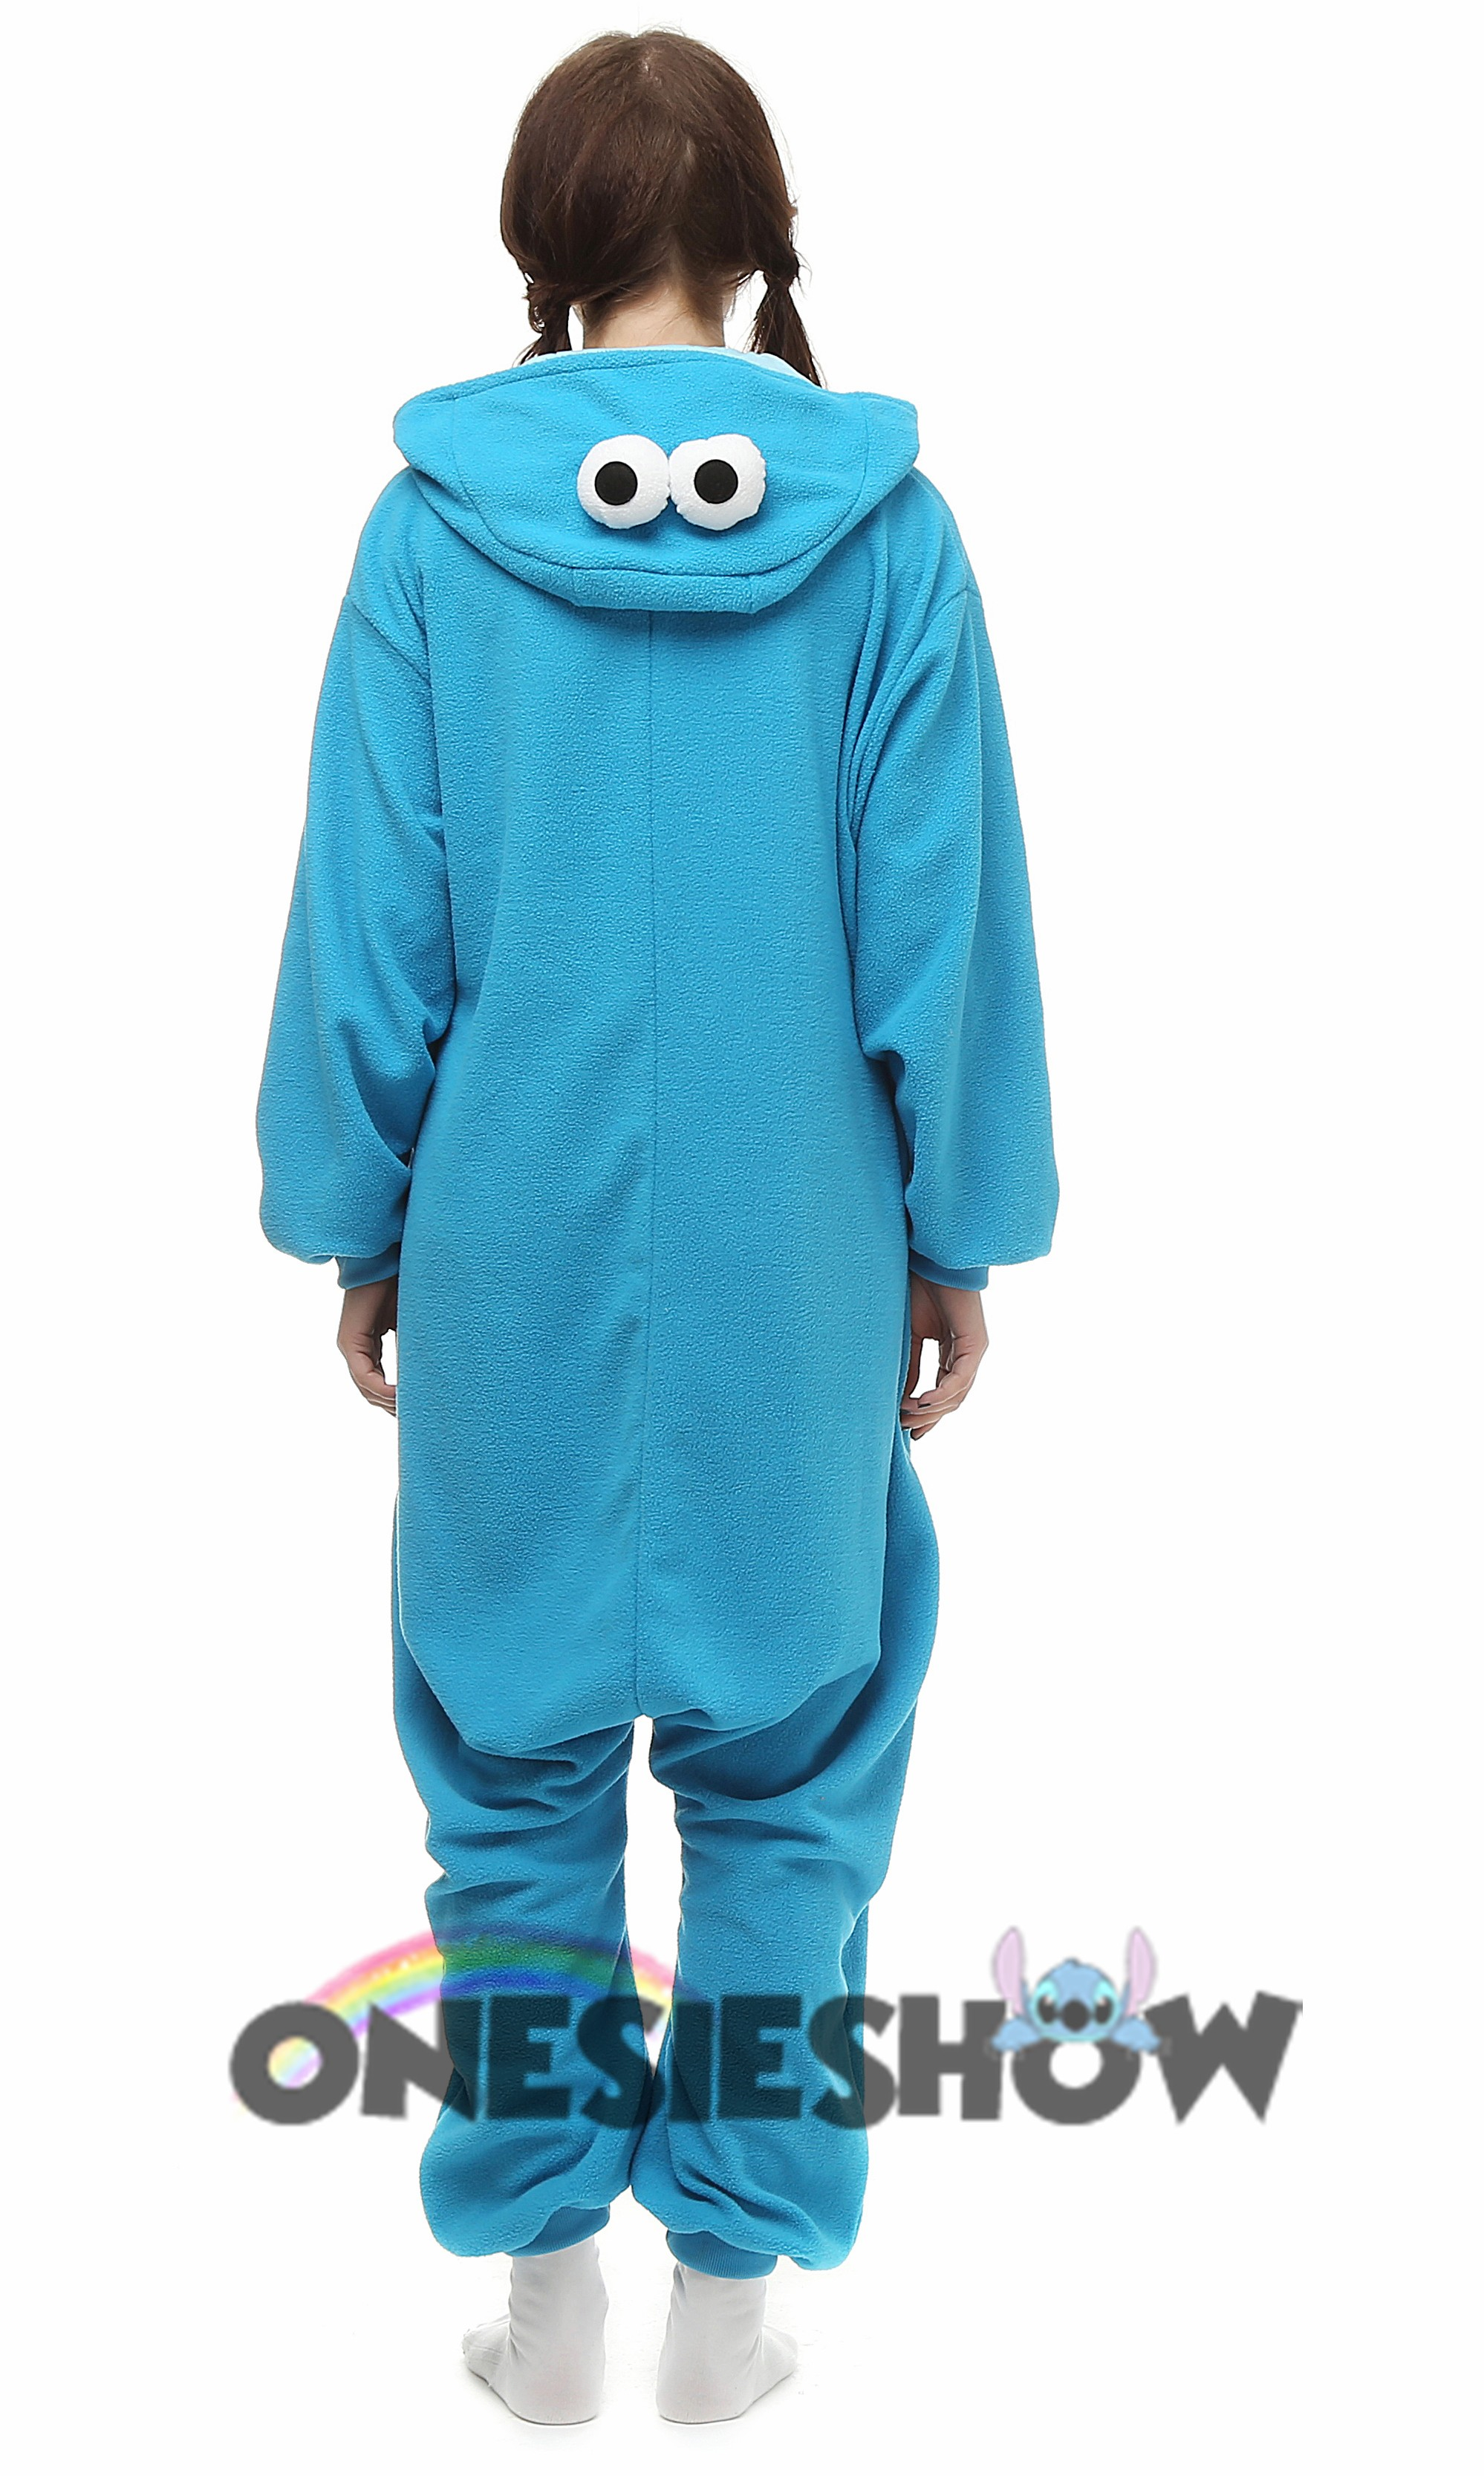 Sesame Street 6 Piece Bath and Body Set Elmo and Cookie Monster Perfect Christmas Gift Ready to Wrap (ELMO) Sold by ErgodE. $ Sesame Street Cookie Monster Women's Hooded One-Piece Pajamas. Sold by Sears. $ $ Sesame Street Little Girls White Elmo Cookie Monster Long Sleeve Sleeper 2T-4T.